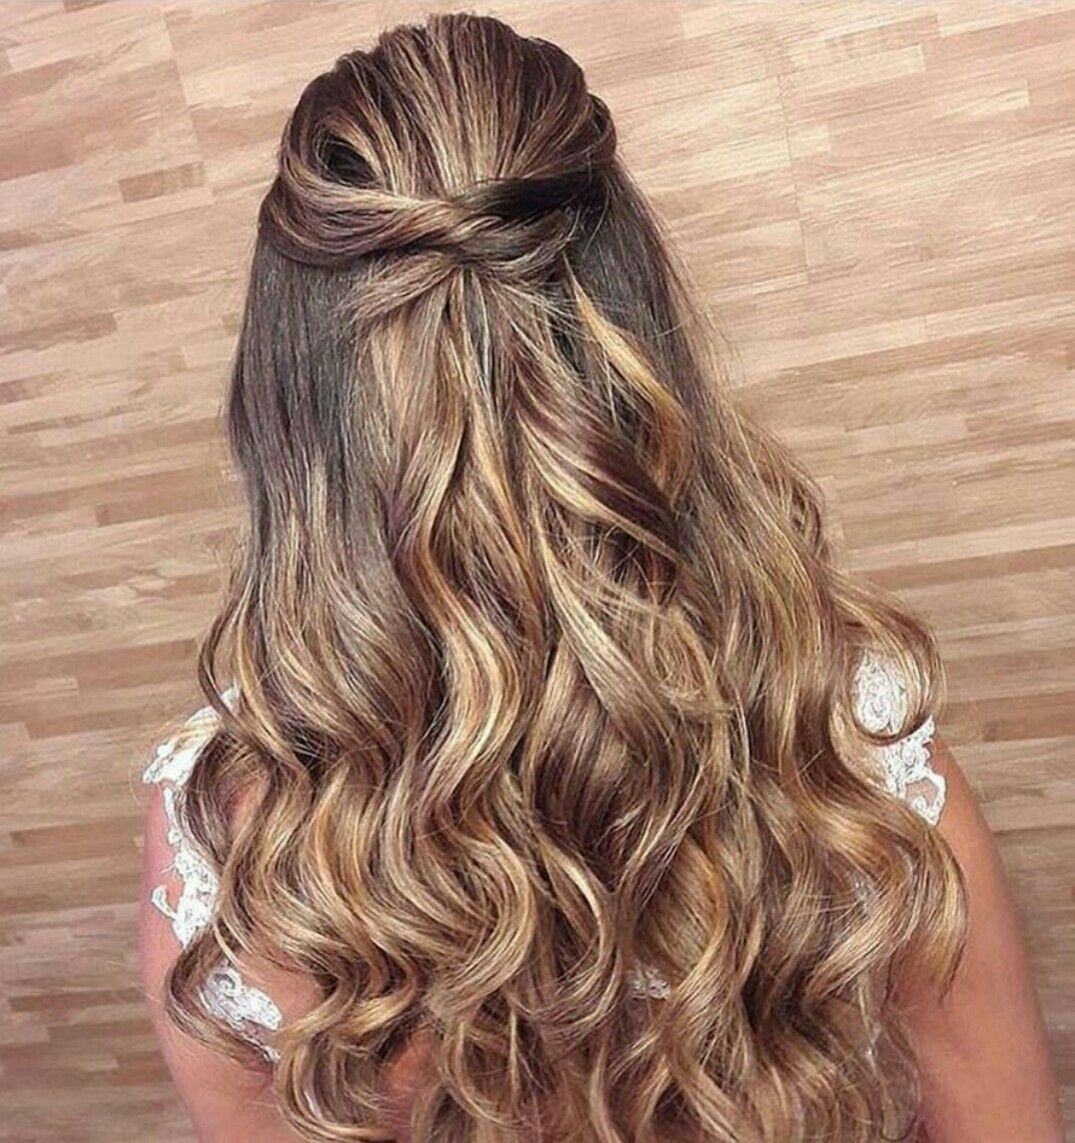 Pin by taylor anderson on hair pinterest hair hair styles and